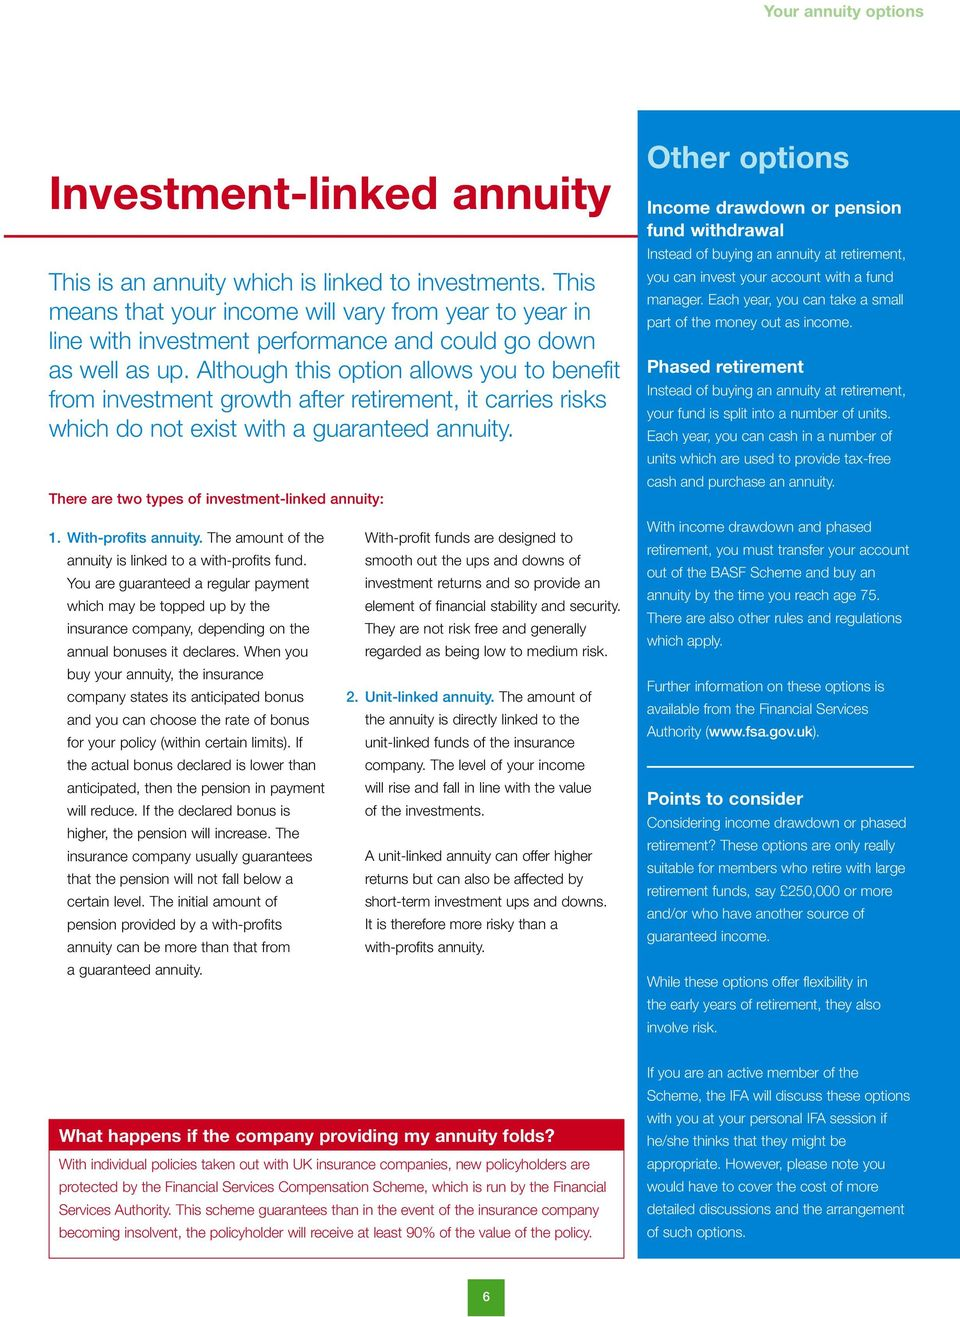 Although this option allows you to benefit from investment growth after retirement, it carries risks which do not exist with a guaranteed annuity.